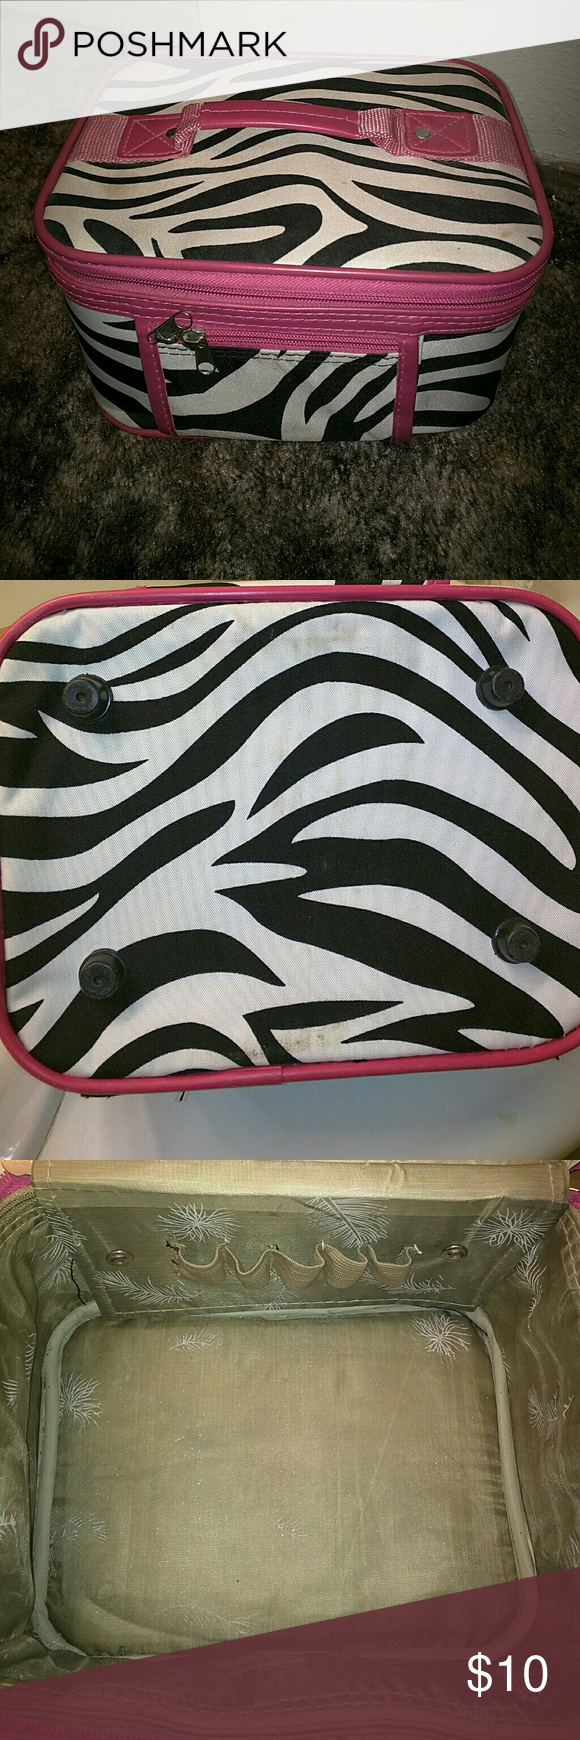 Makeup bag Zebra print makeup bag with zipper. Small pocket in the front with zipper. Mirror inside, slots to hold small items. Very small cleaning needed. 9 and a half by 7 and a half (measurements) Bags Cosmetic Bags & Cases